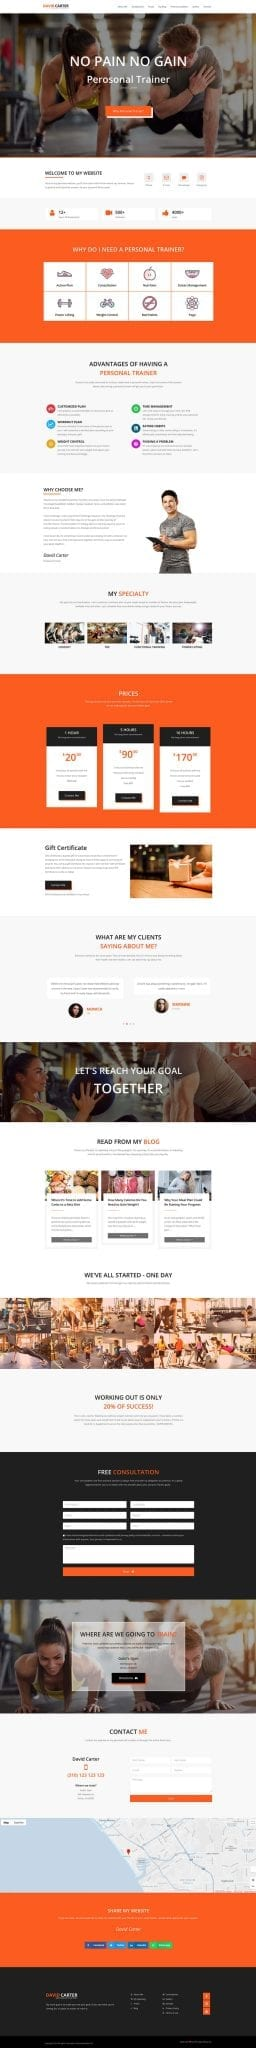 Personal Fitness Trainer Website template - ready made website preview